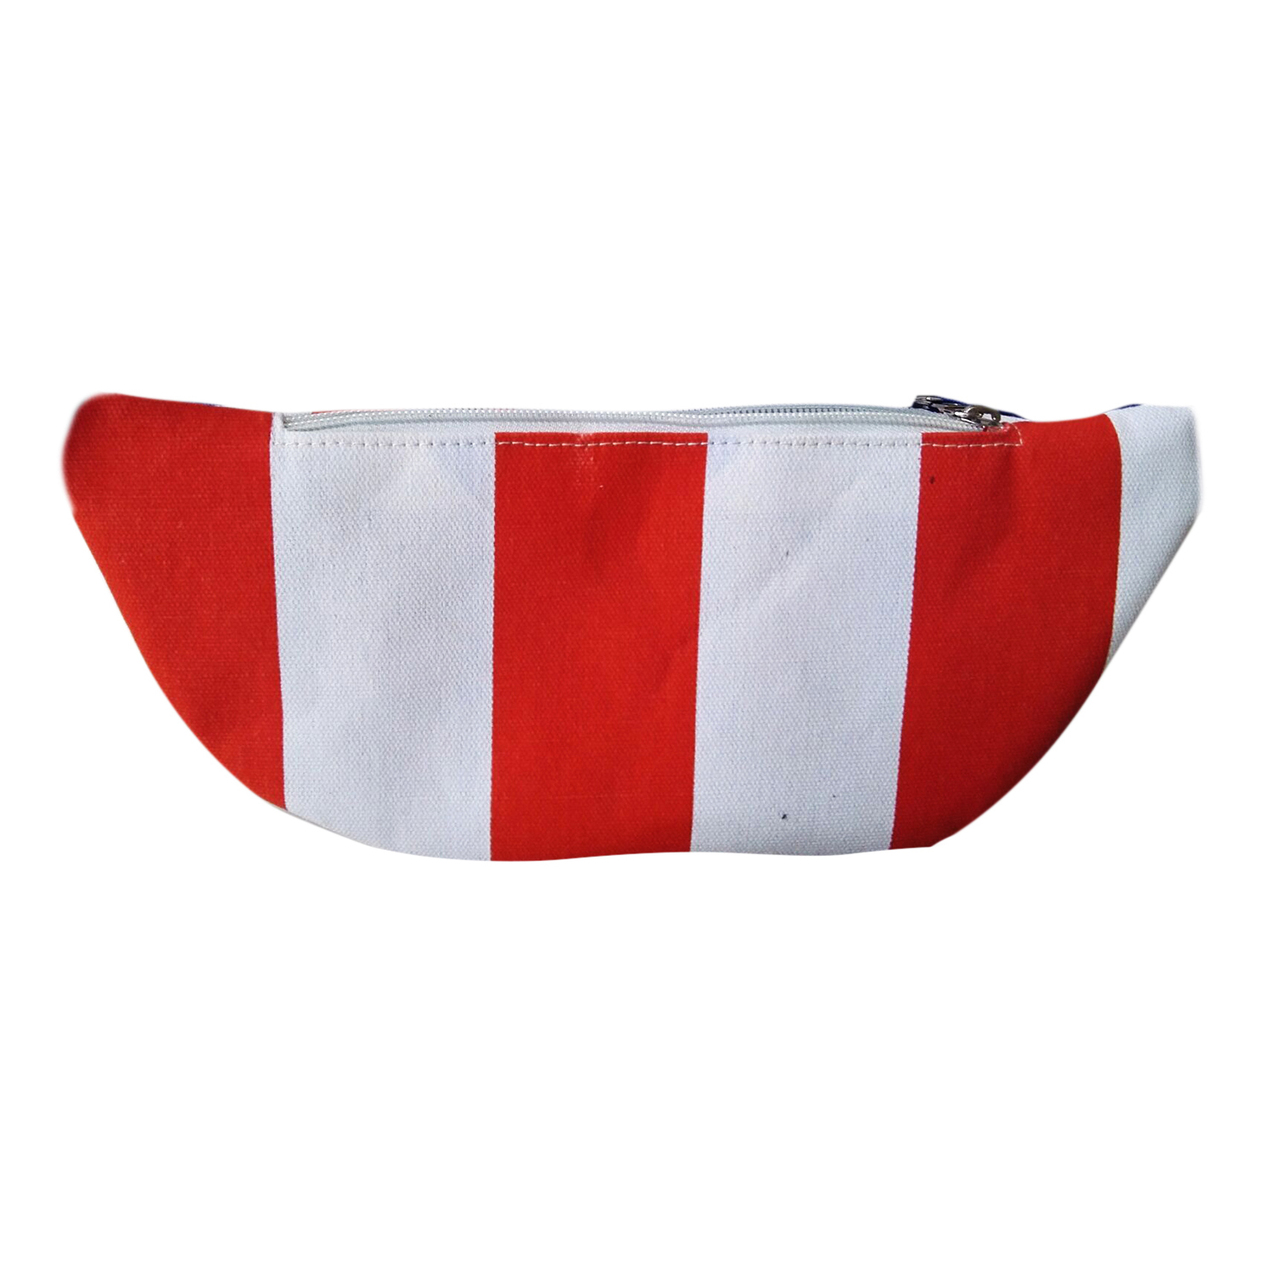 American Flag Fanny Pack Perfect for 4th of July Patriotic Red White Blue Waist Pack